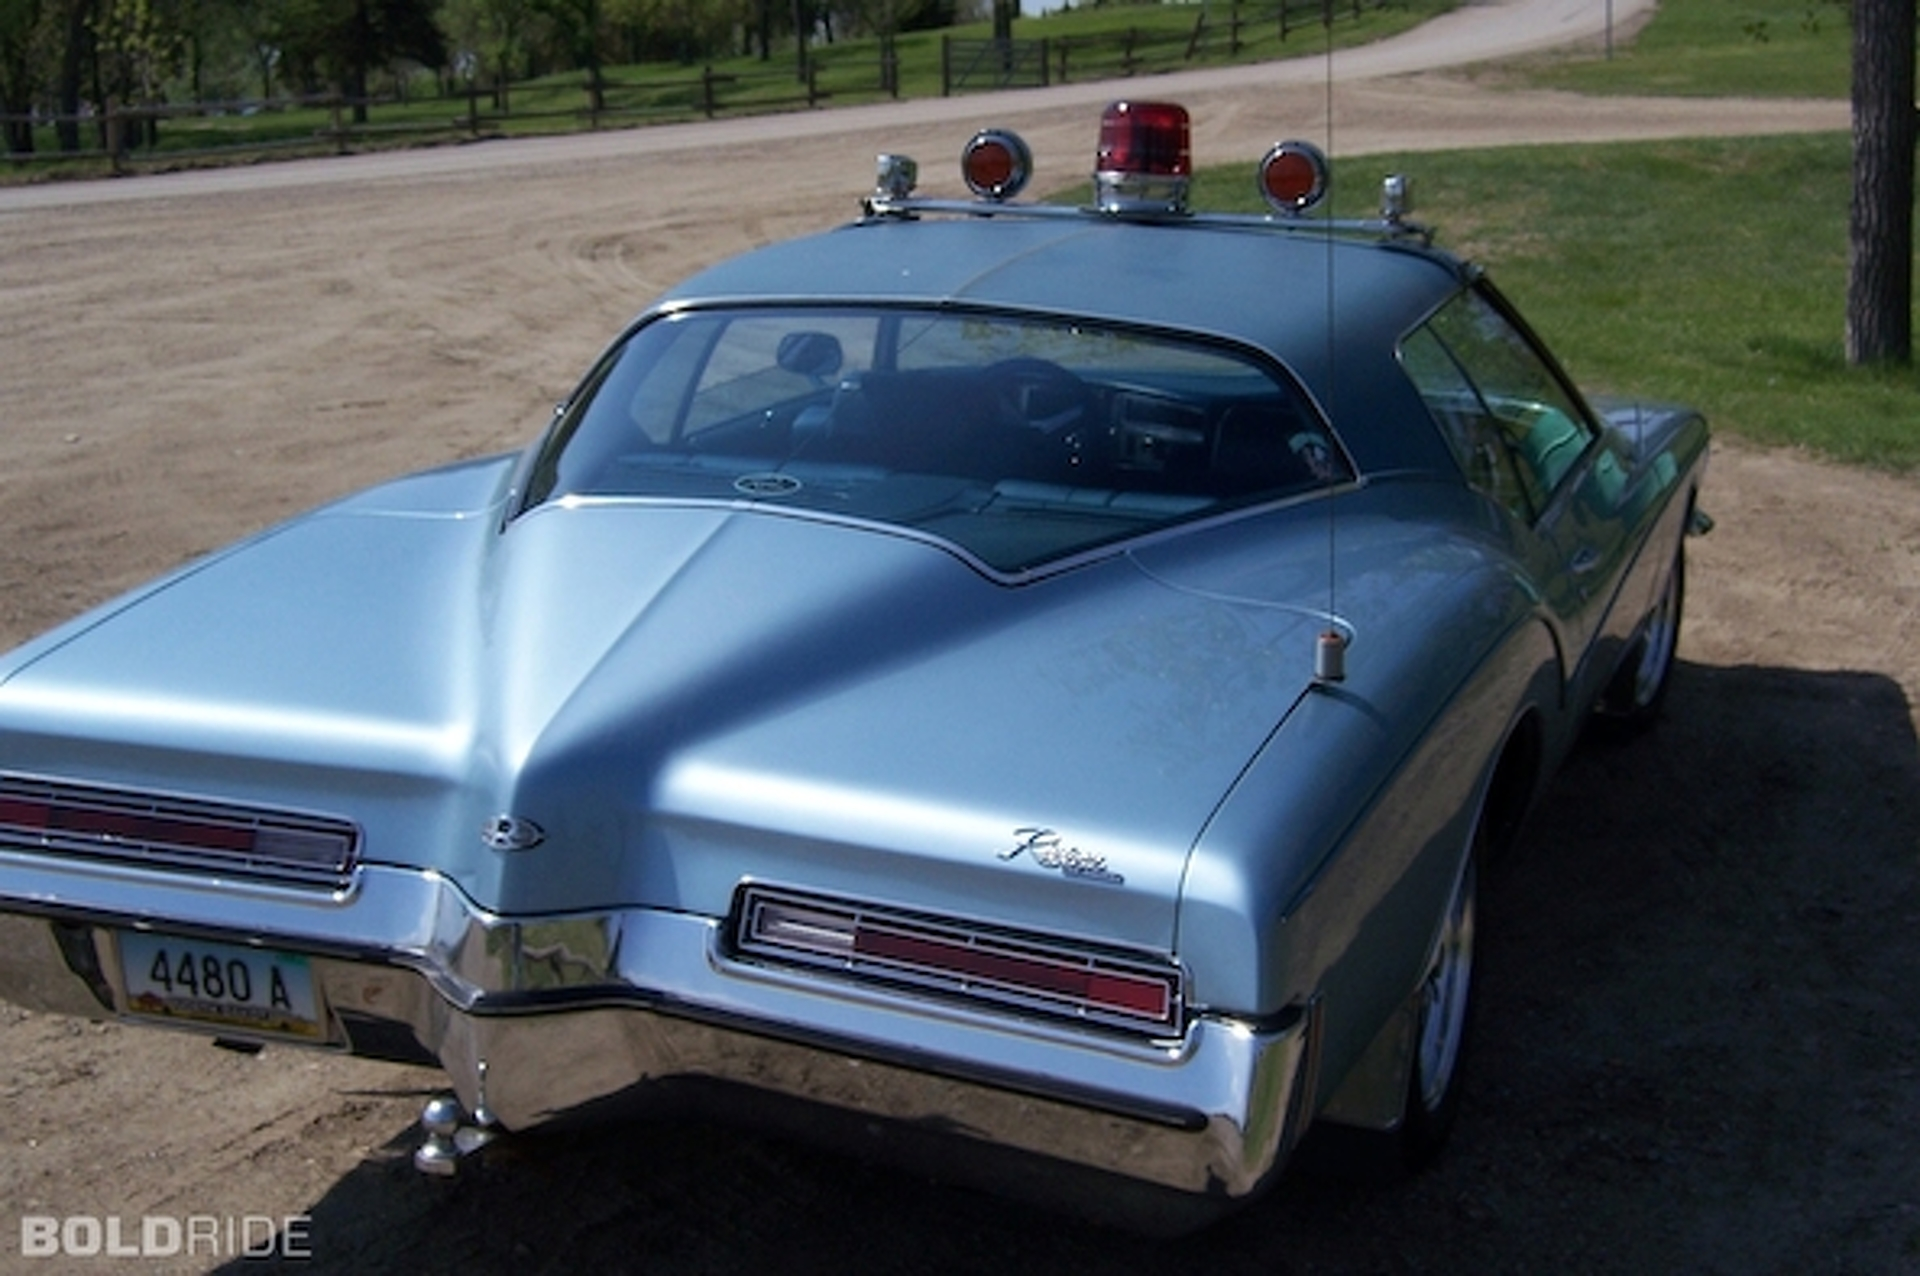 Your Ride: 1972 Buick Riviera Cop Car